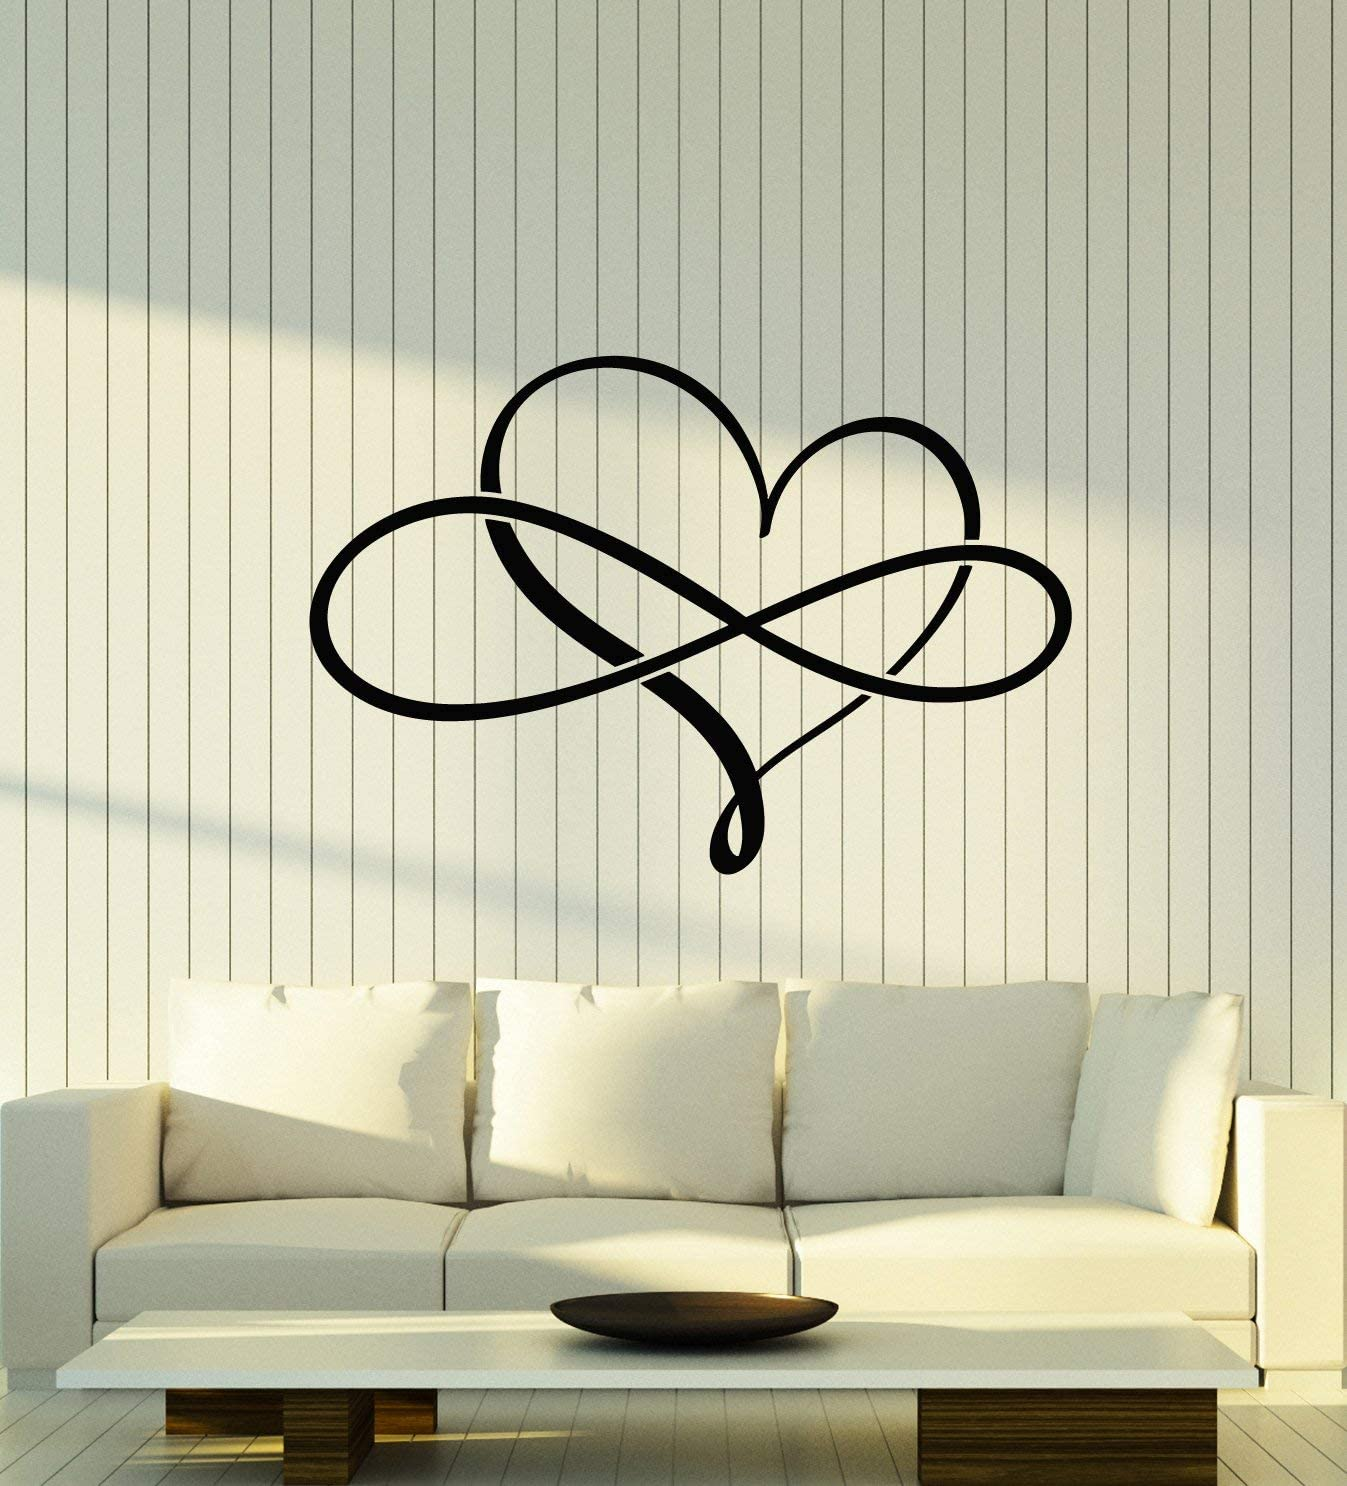 Vinyl Wall Decal Love Forever Heart Symbol of Infinity Stickers Large Decor (2960ig) Black